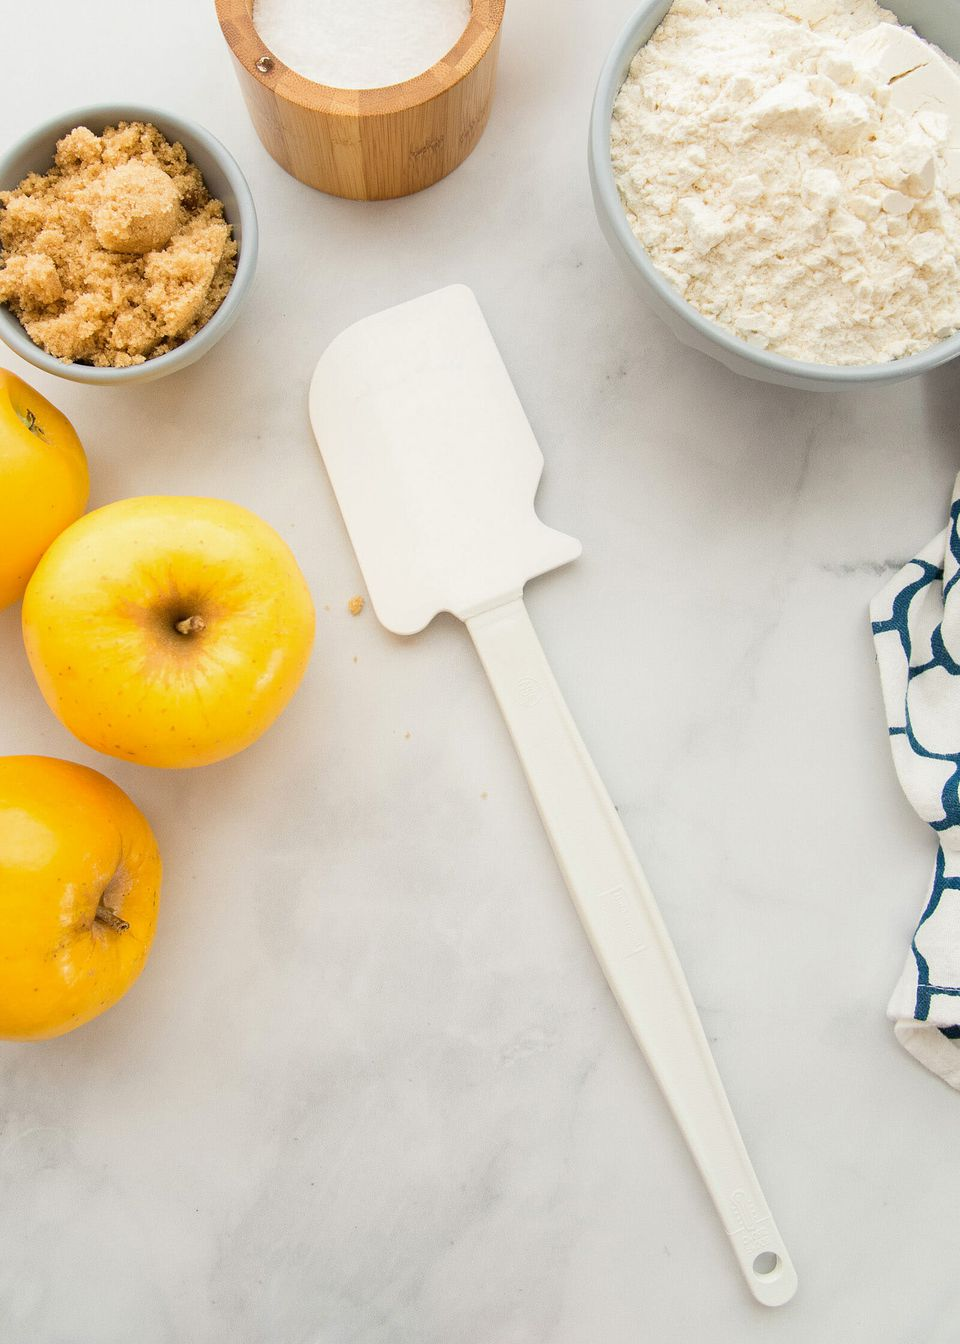 The best rubber spatula set in the center of a counter with ingredients around it.